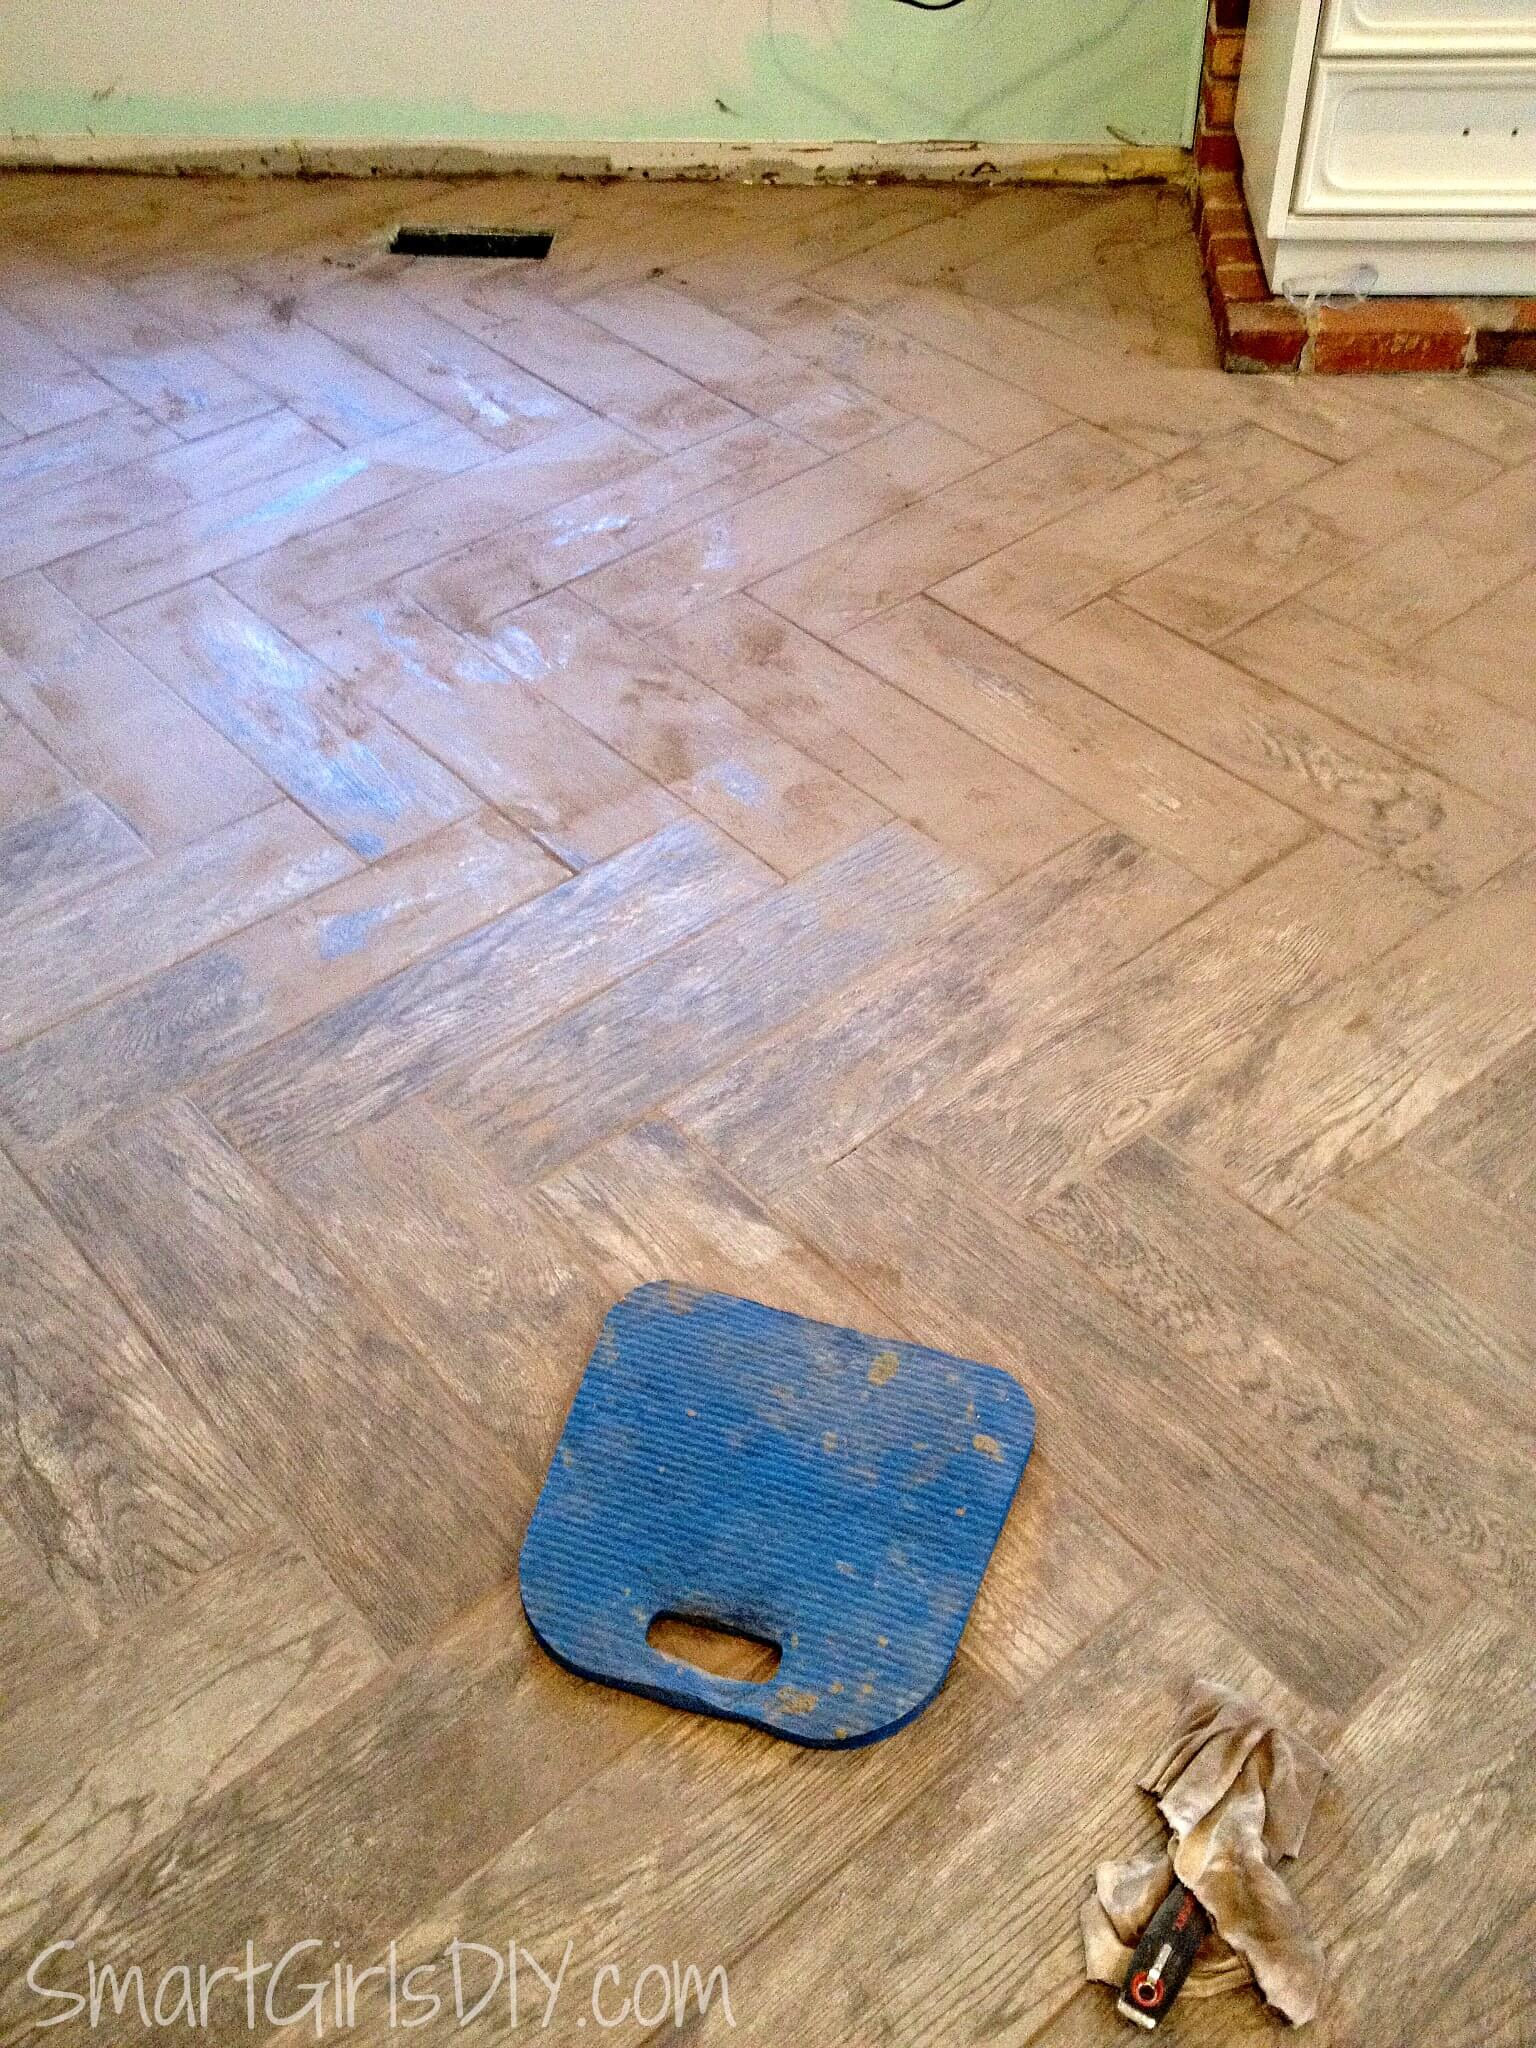 Grouting a herringbone tile floor family room 11 labor of love cleaning grout off tile dailygadgetfo Gallery